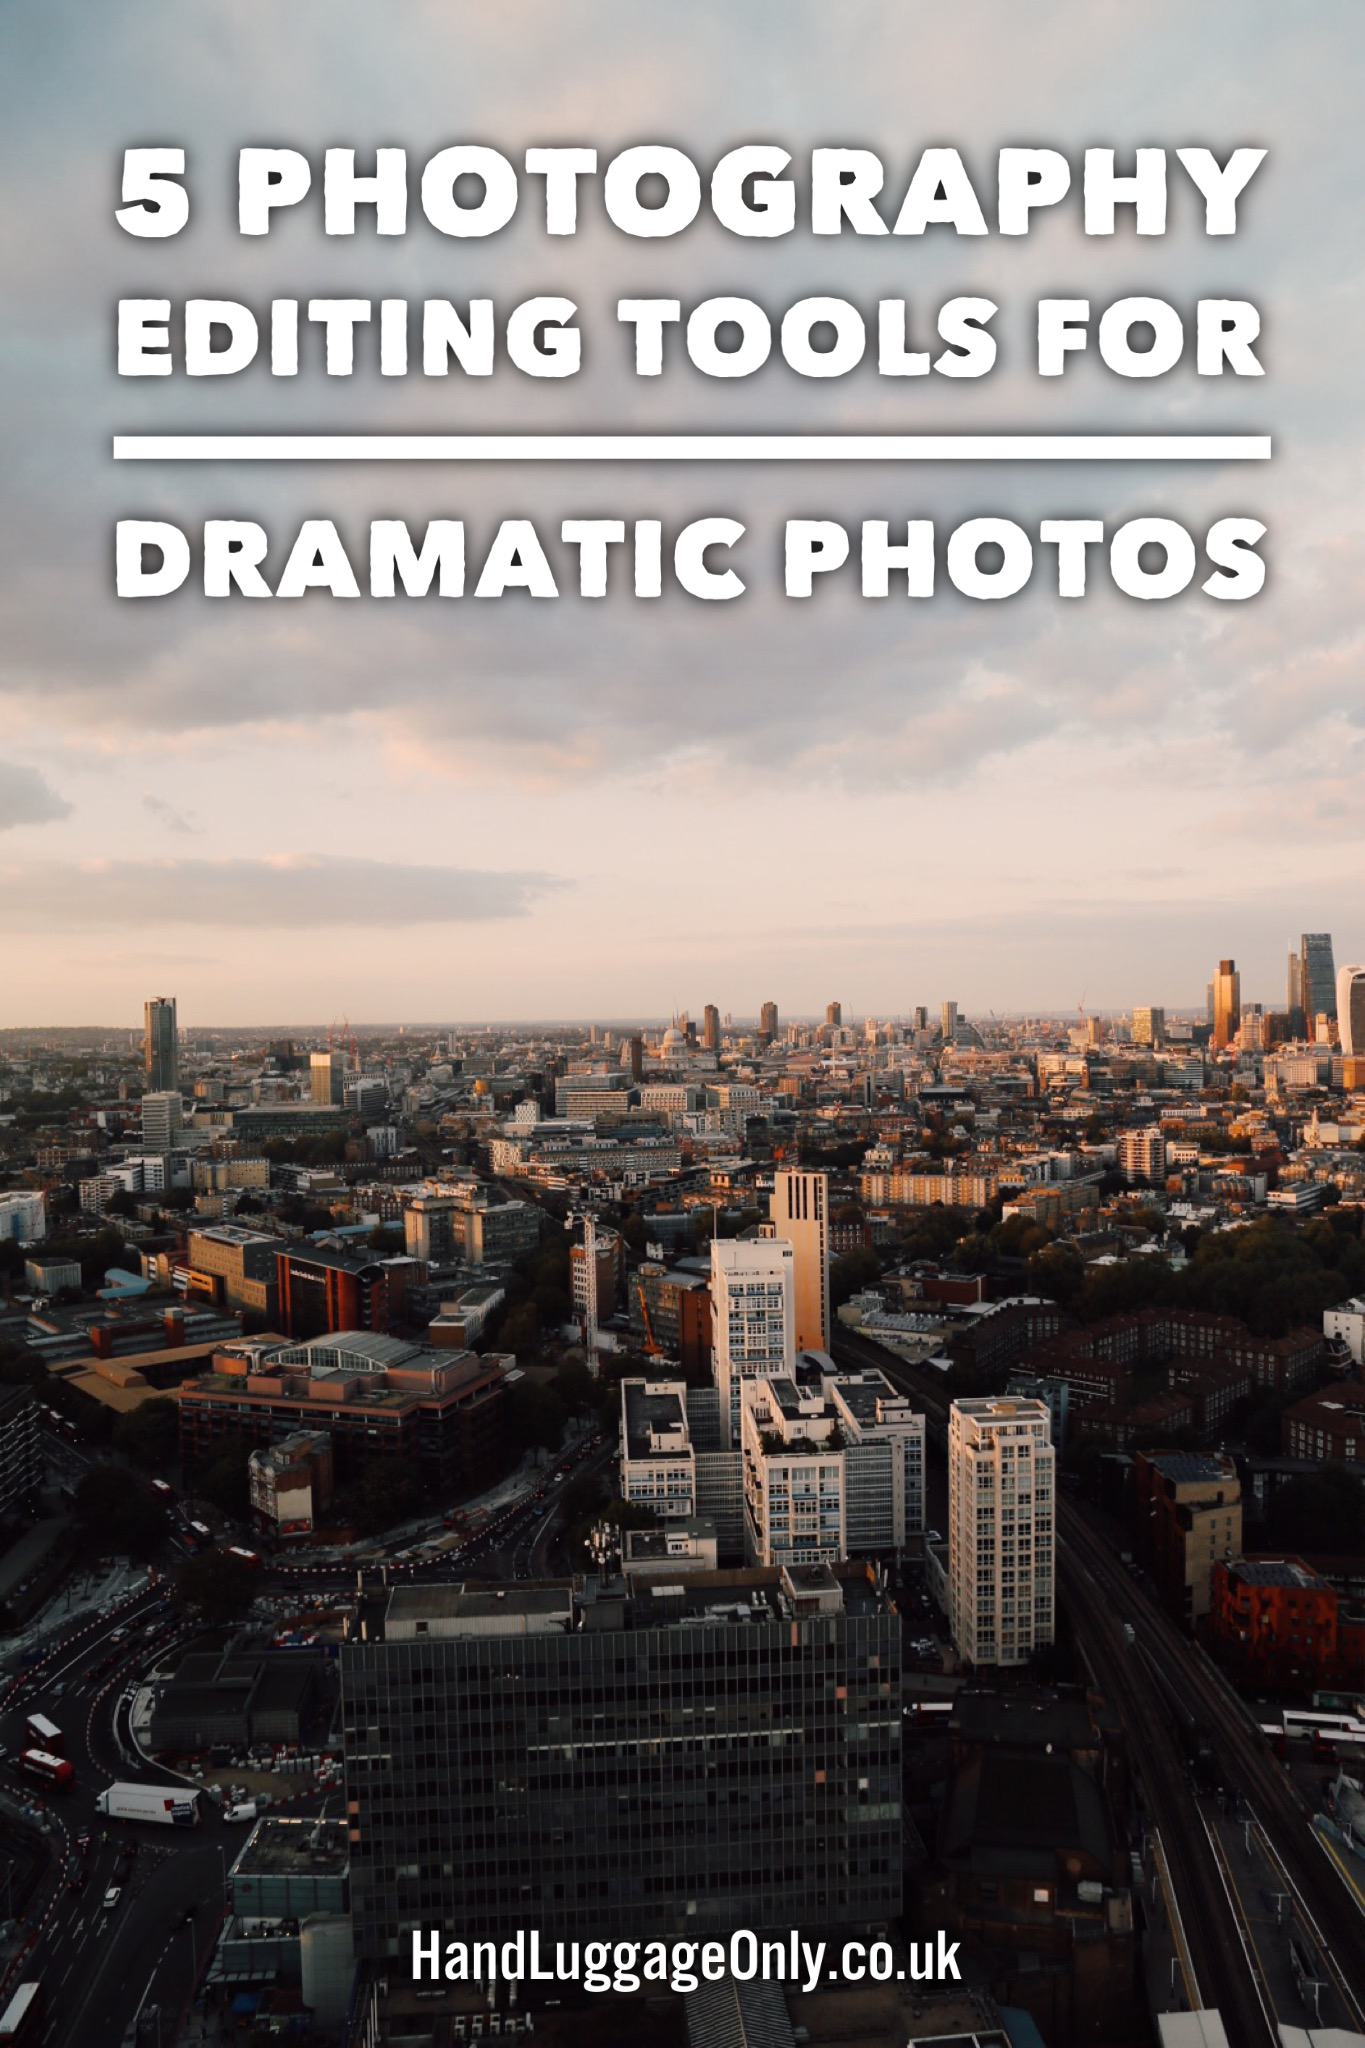 5 Photography Editing Tools To Make Your Photos More Striking And Dramatic